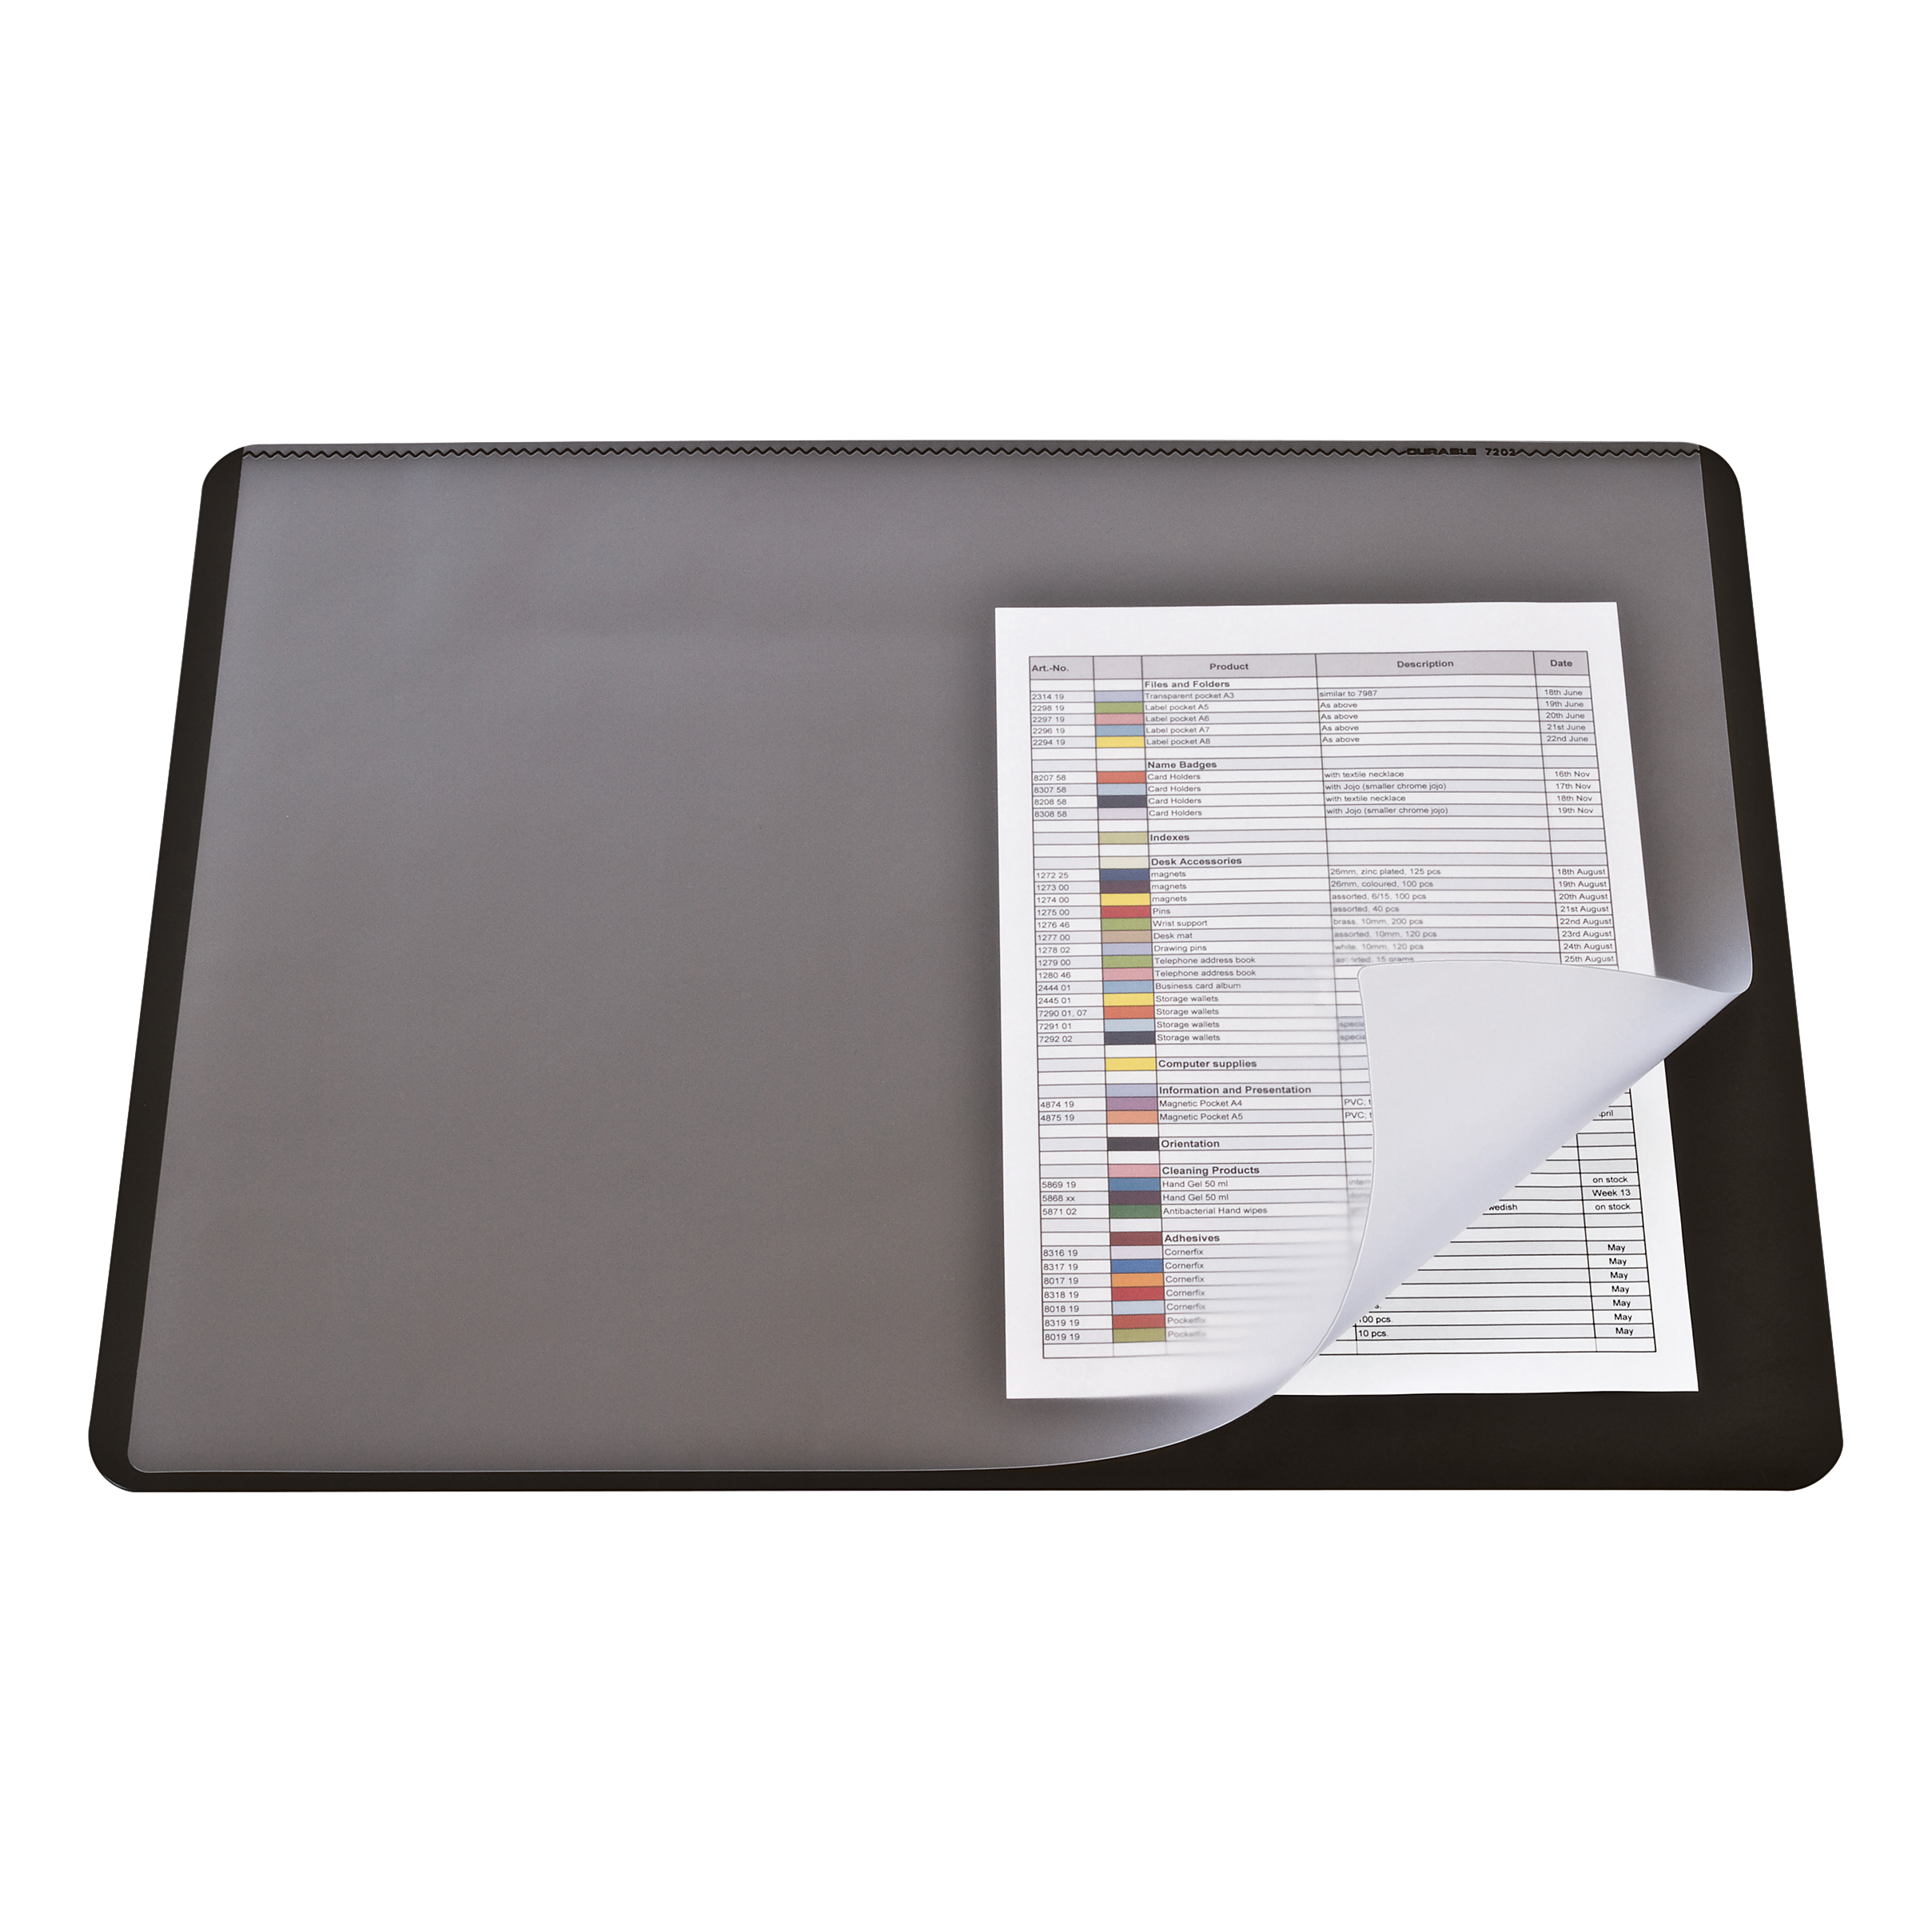 Desk Mats Durable Desk Mat with Transparent Overlay W530xD400mm Black Ref 7202/01